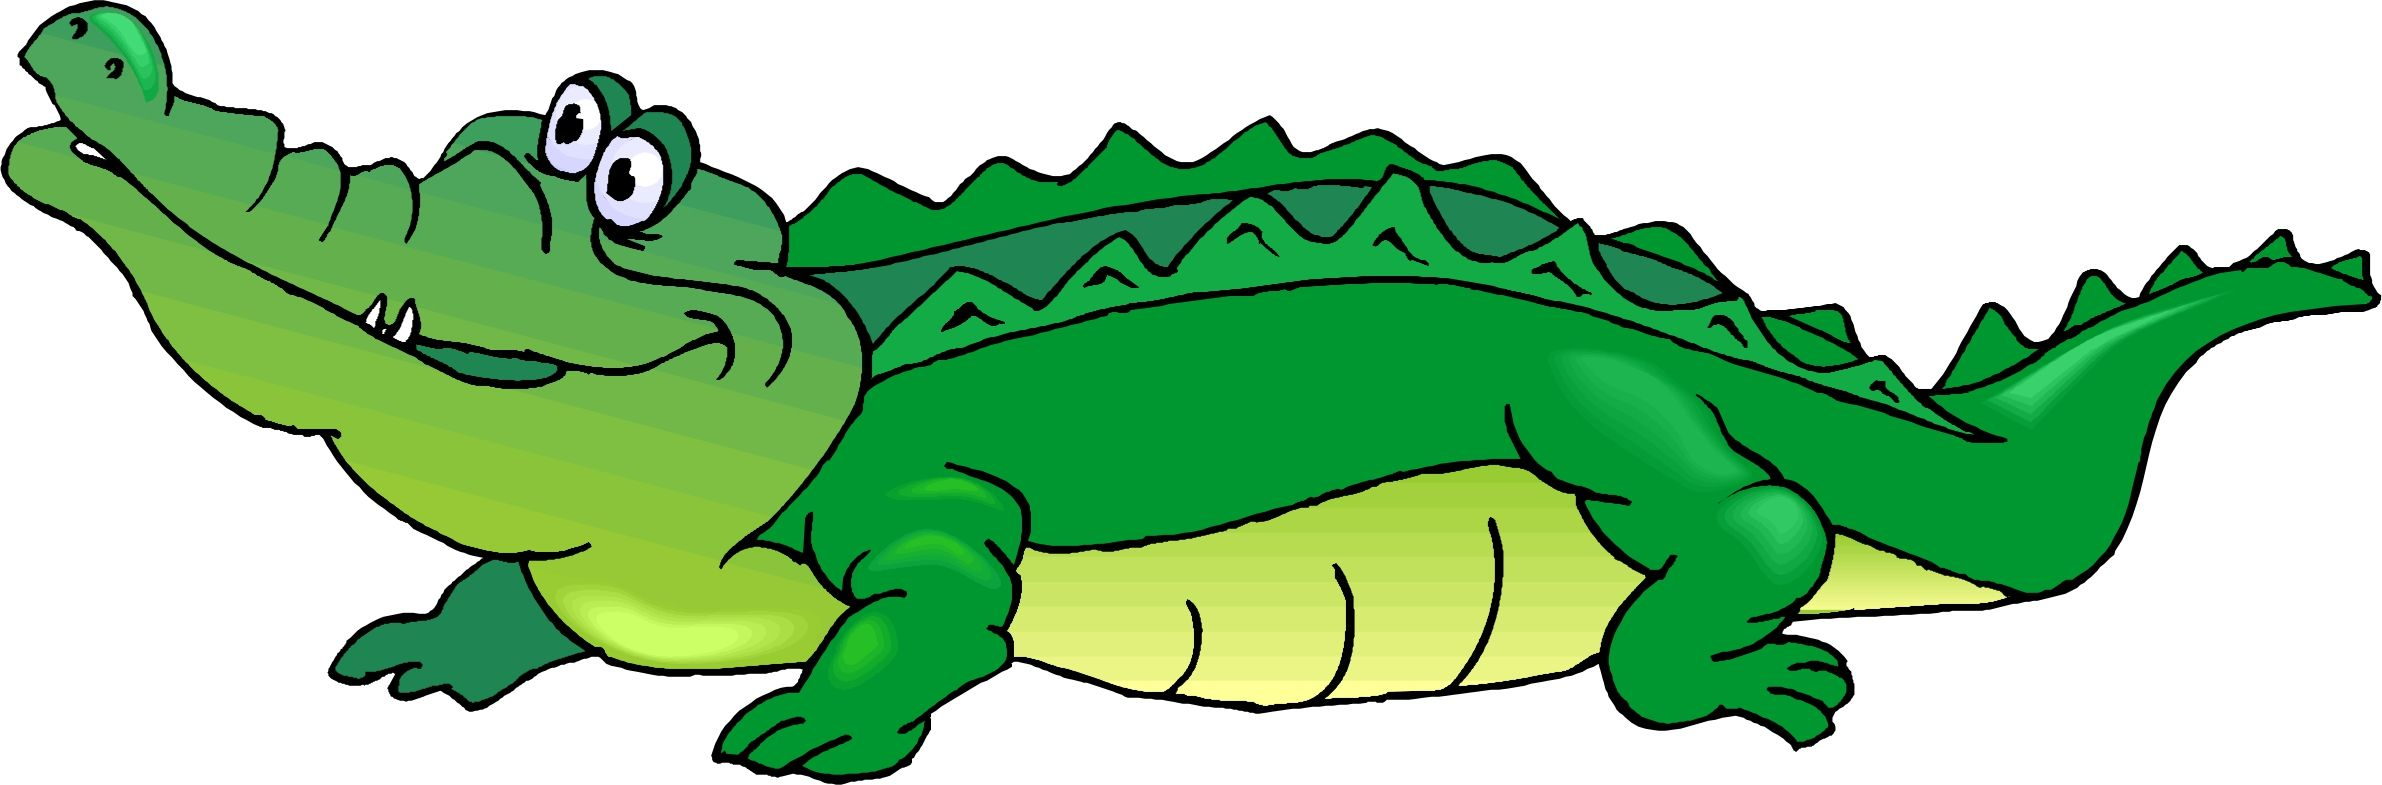 gator clip art use these free images for your websites art rh pinterest co uk Free Alligator Clip Art for Teachers Free Border Clip Art Alligator